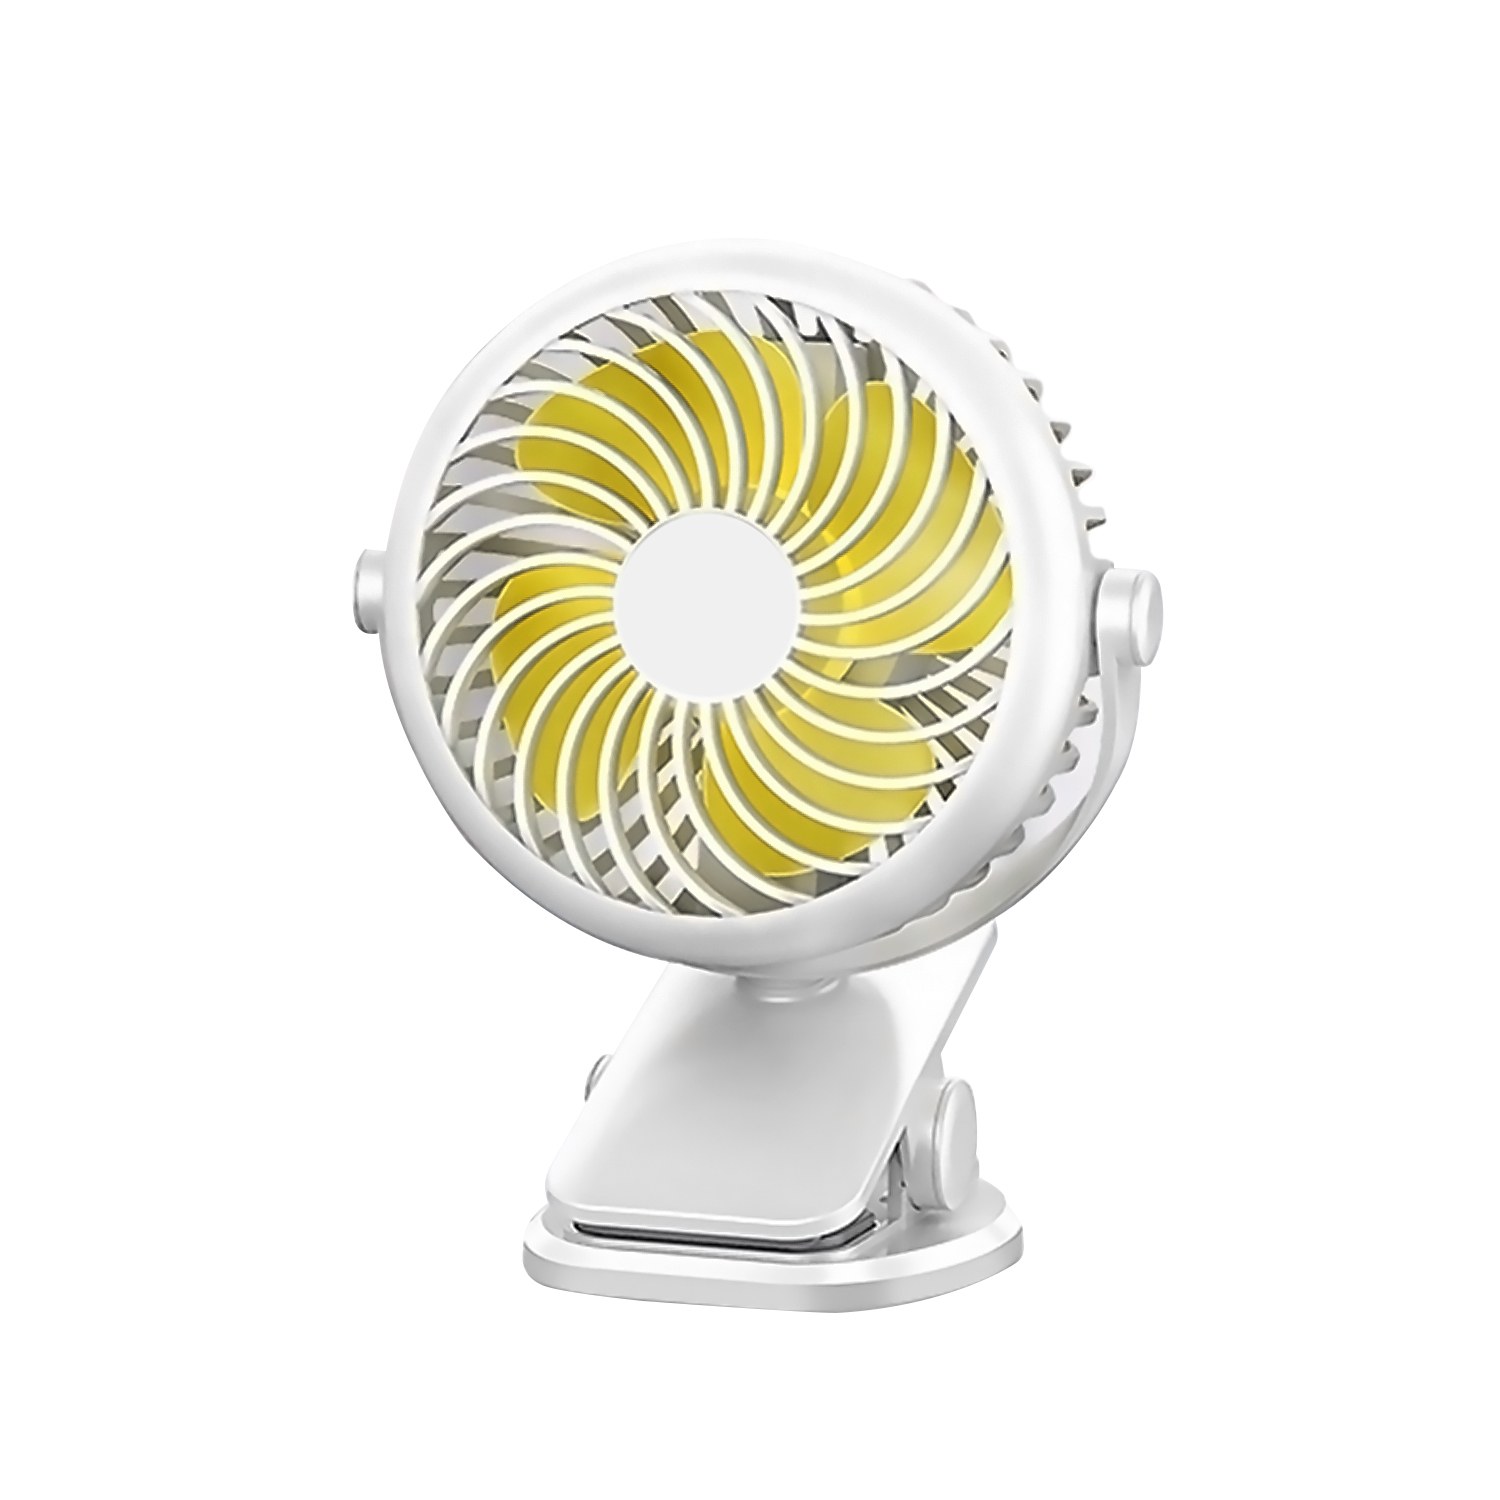 ornerx Cooling Desk Fan USB Powered with Clip White